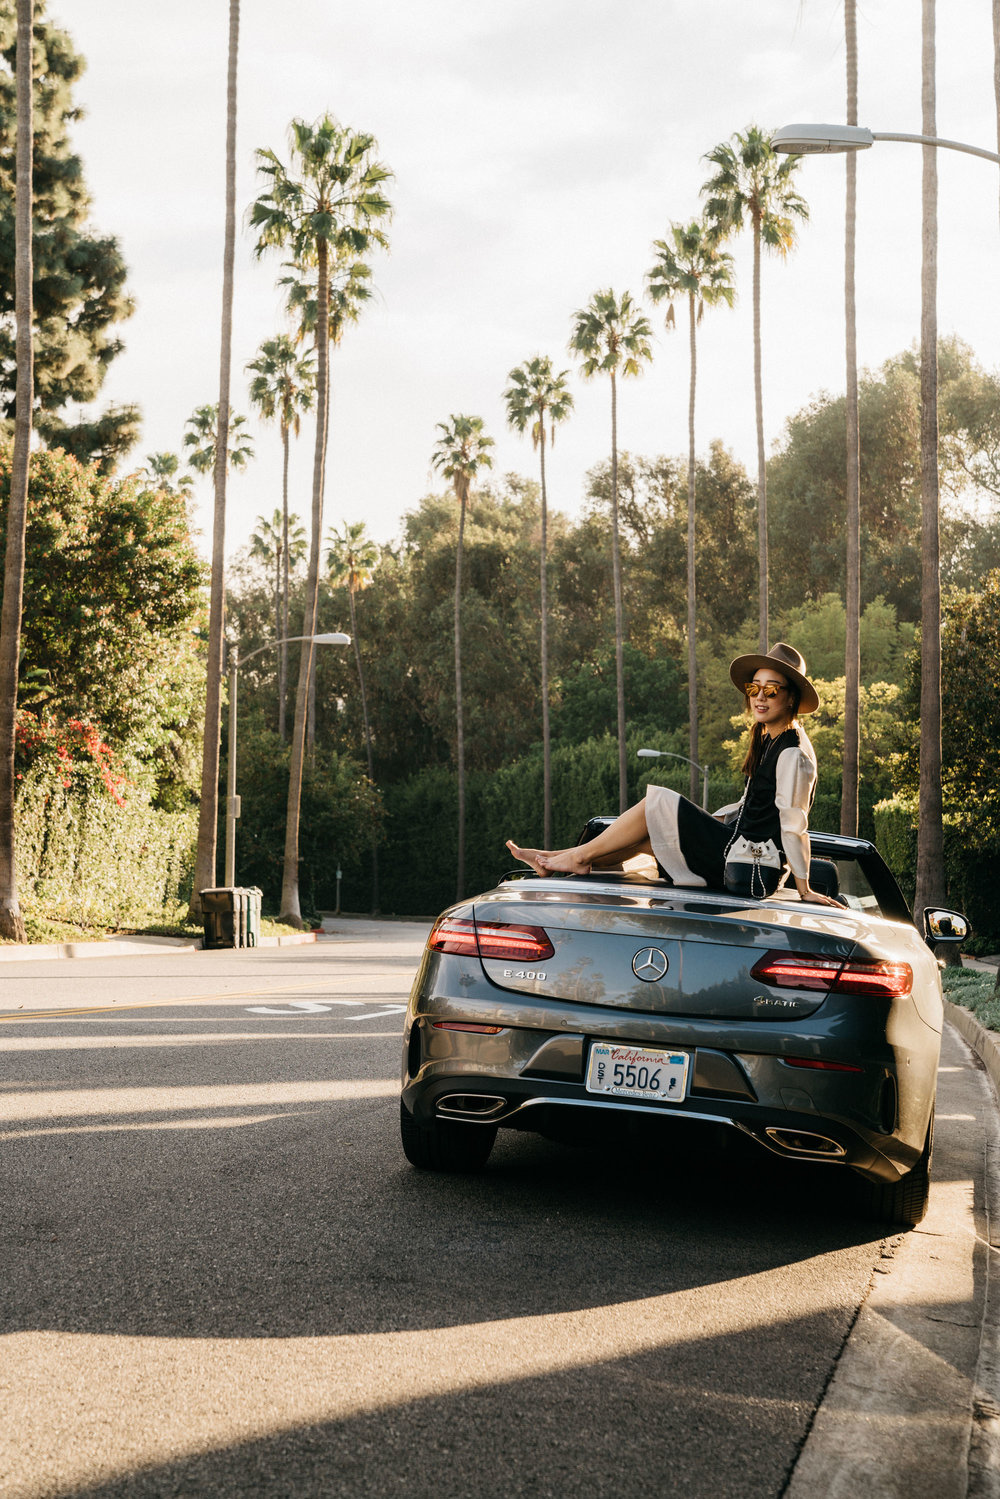 The E400 Cabriolet, our ride in LA via  She's Merecdes